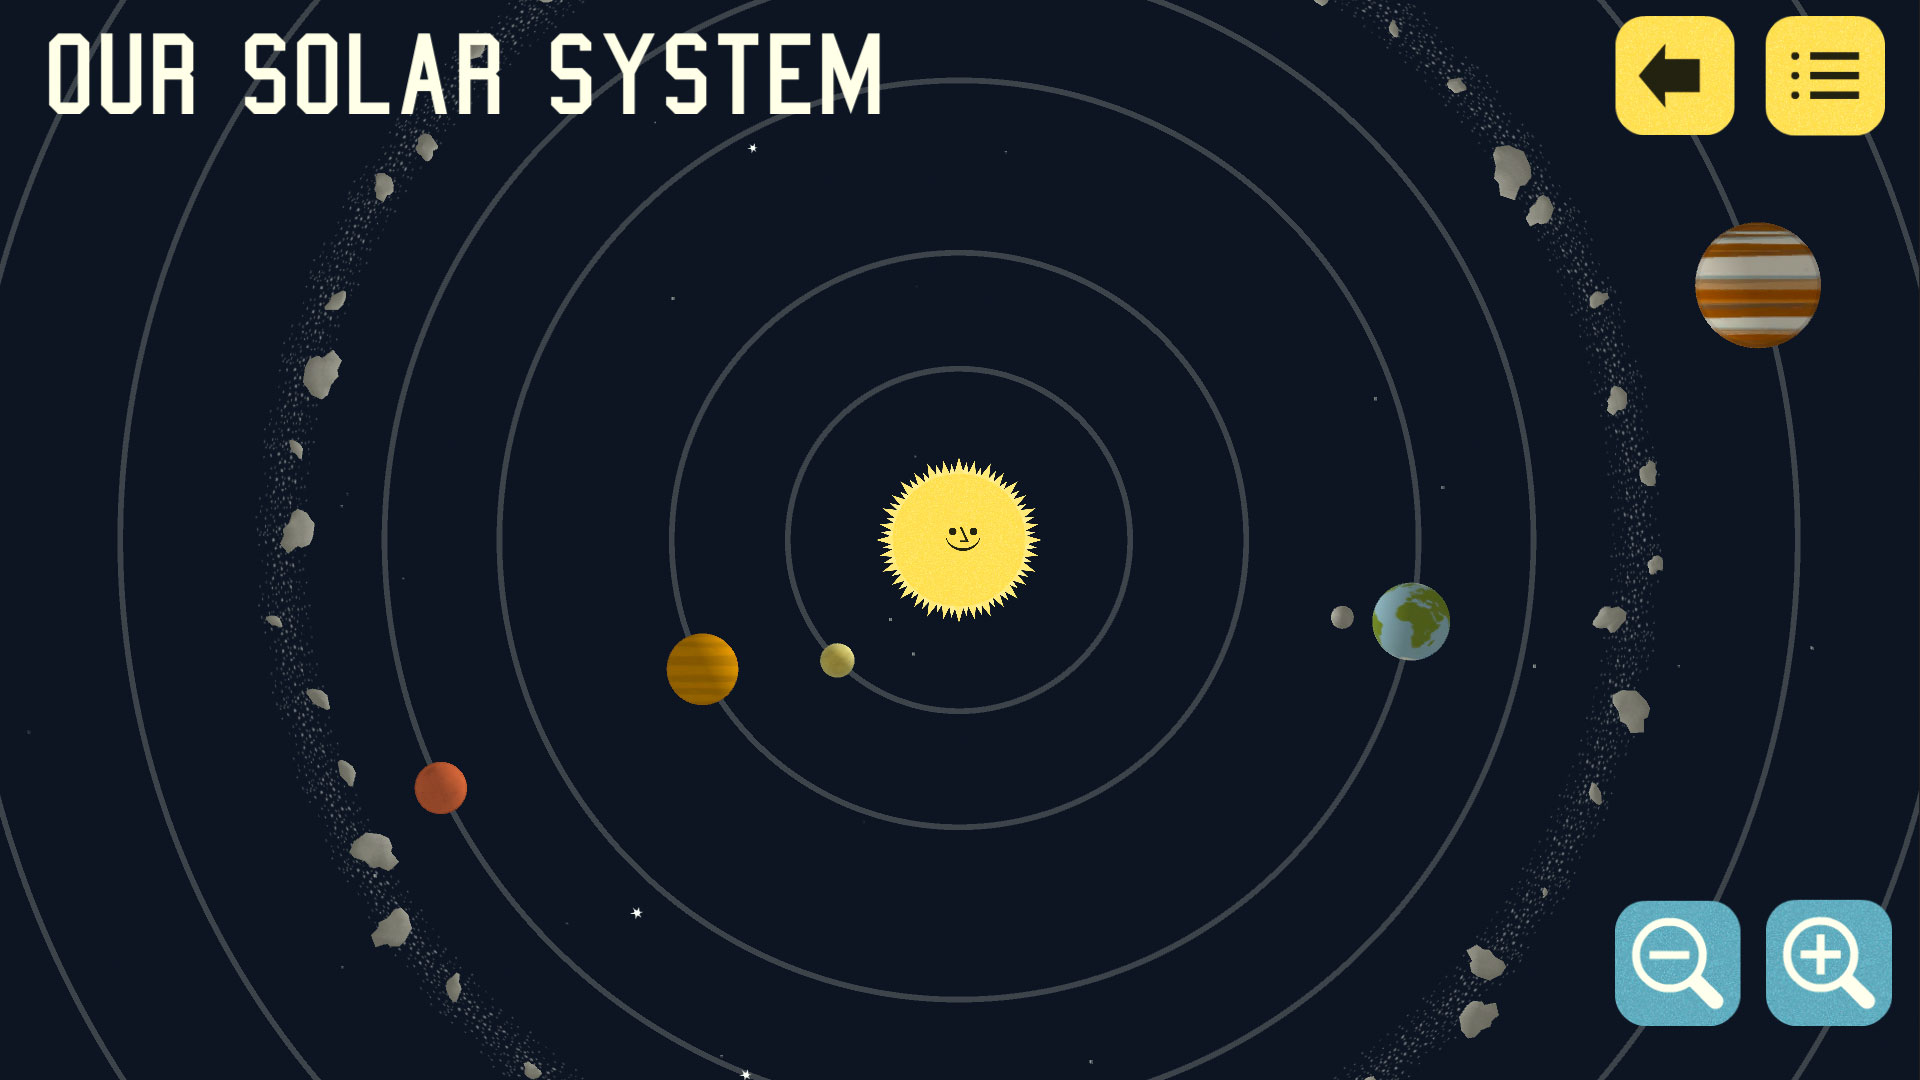 A diagram of planets orbiting the sun